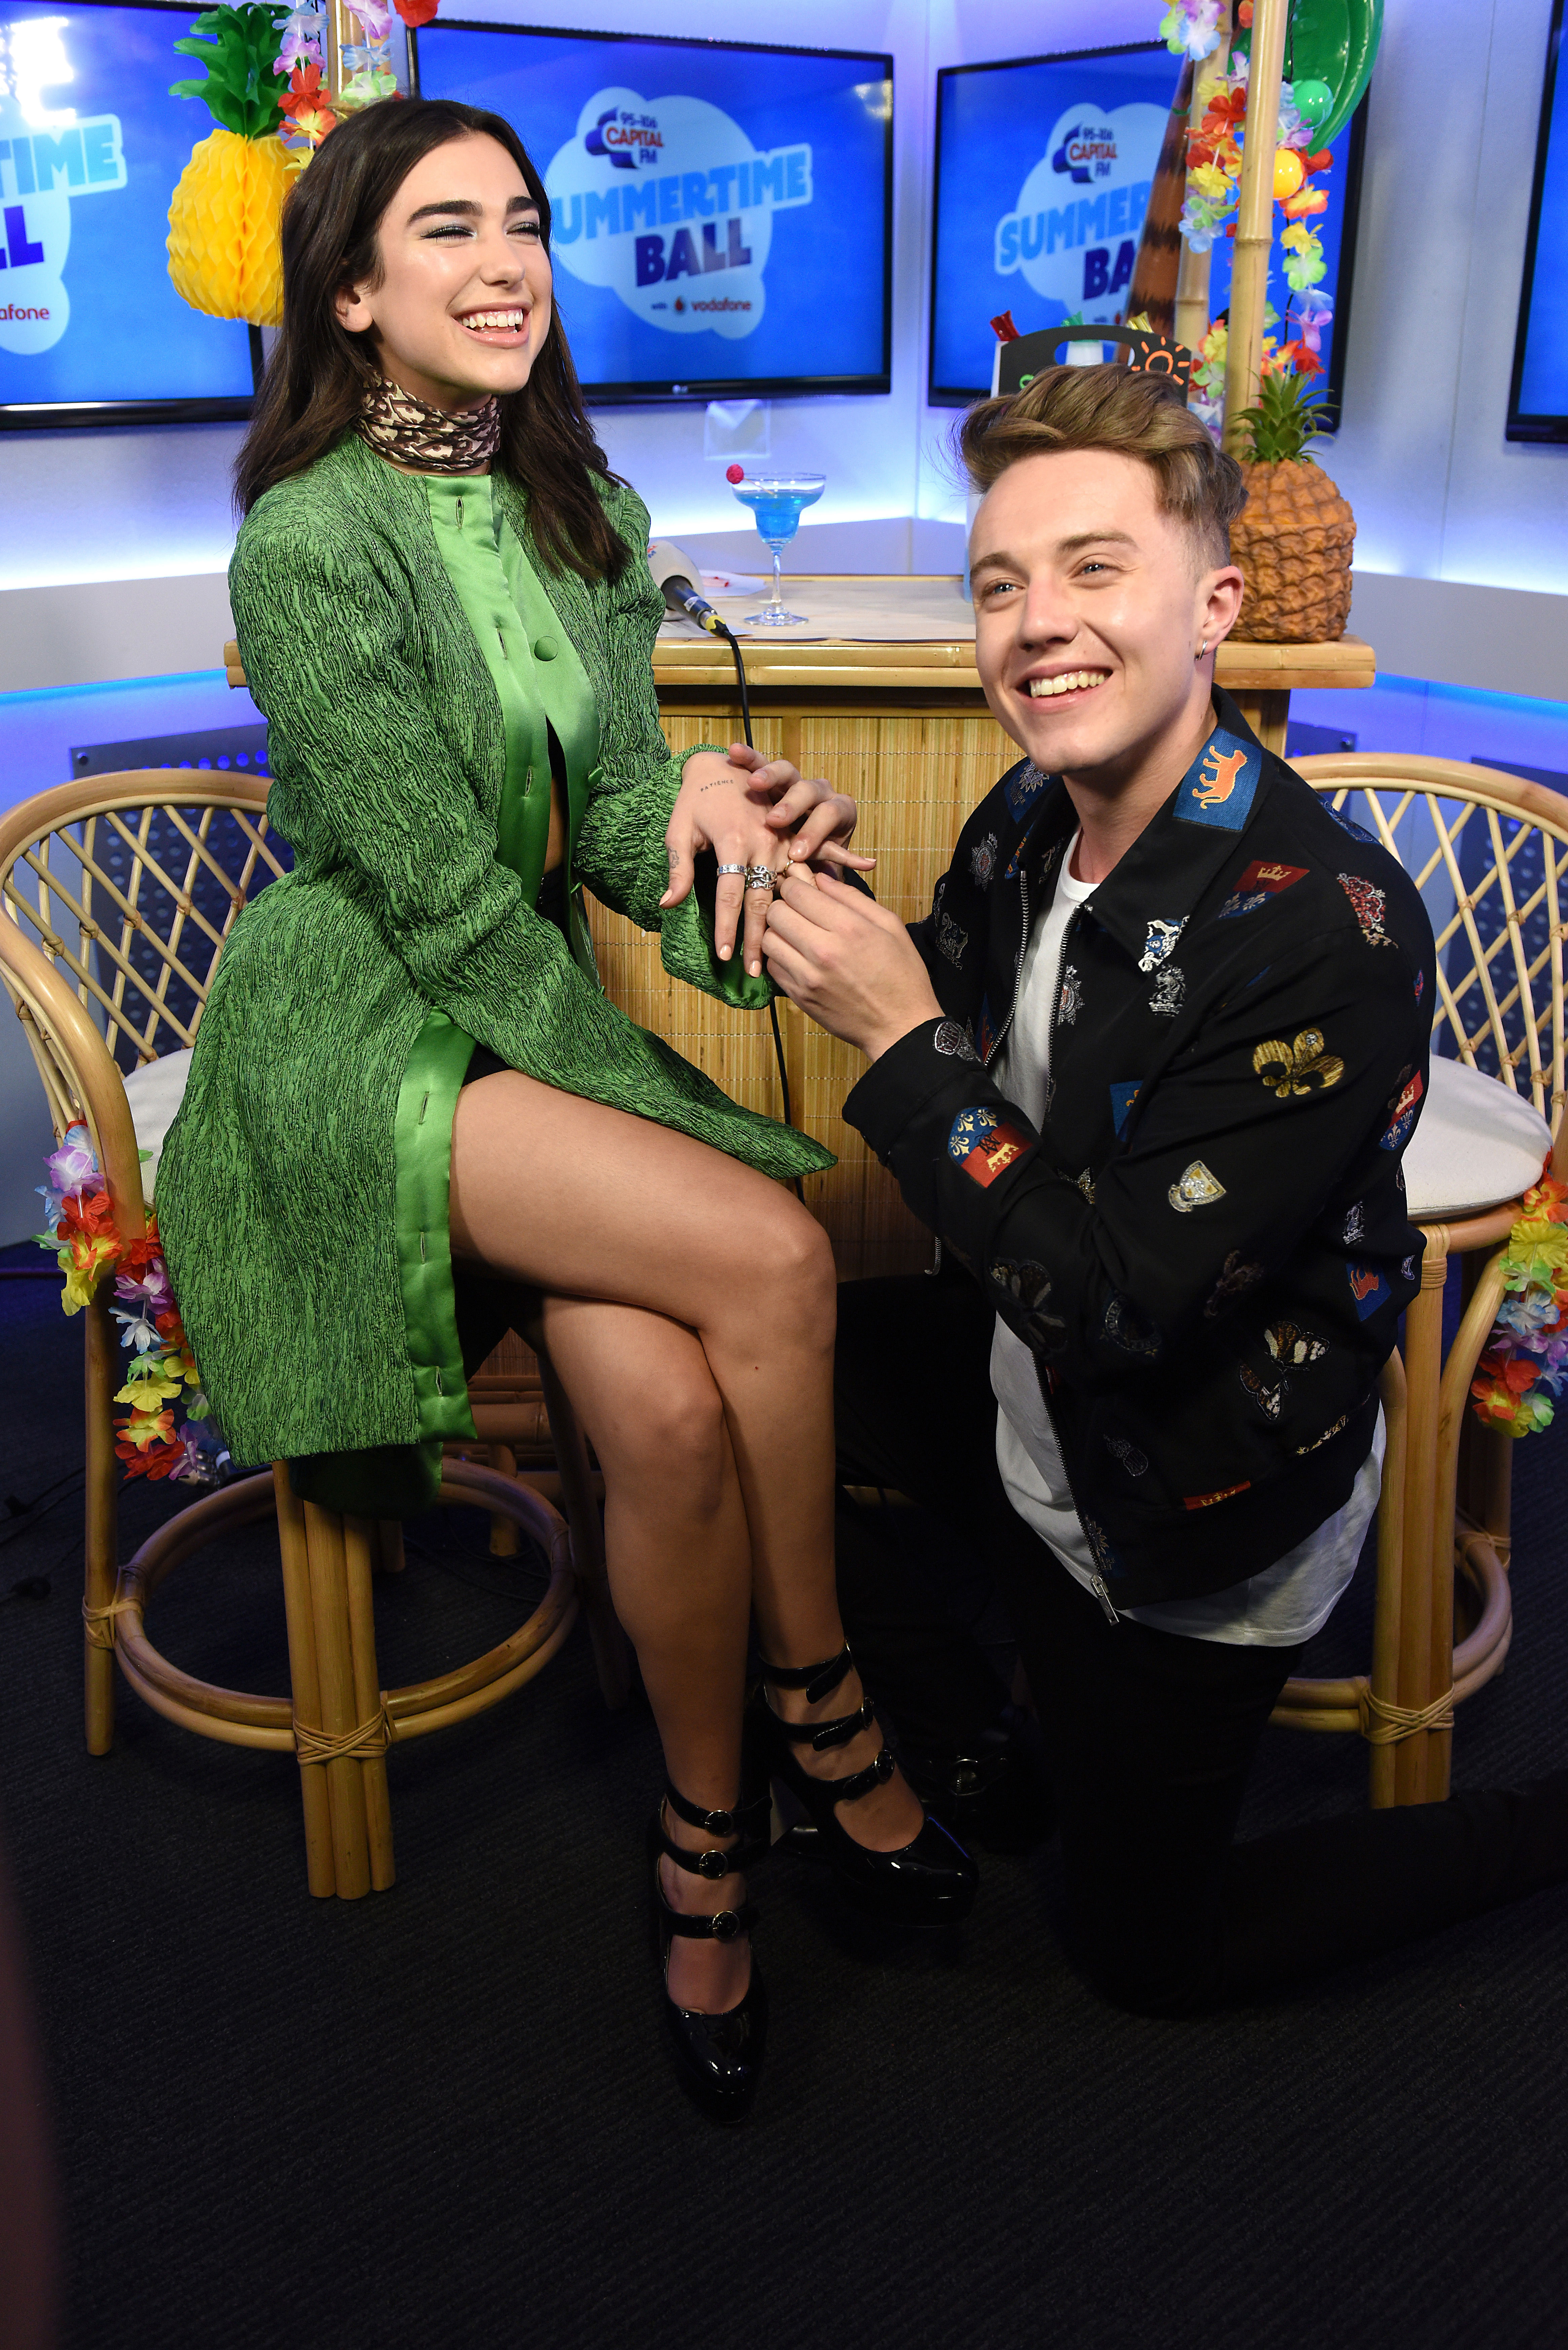 Dua Lipa and Roman Kemp Summertime Ball 2017 Studi